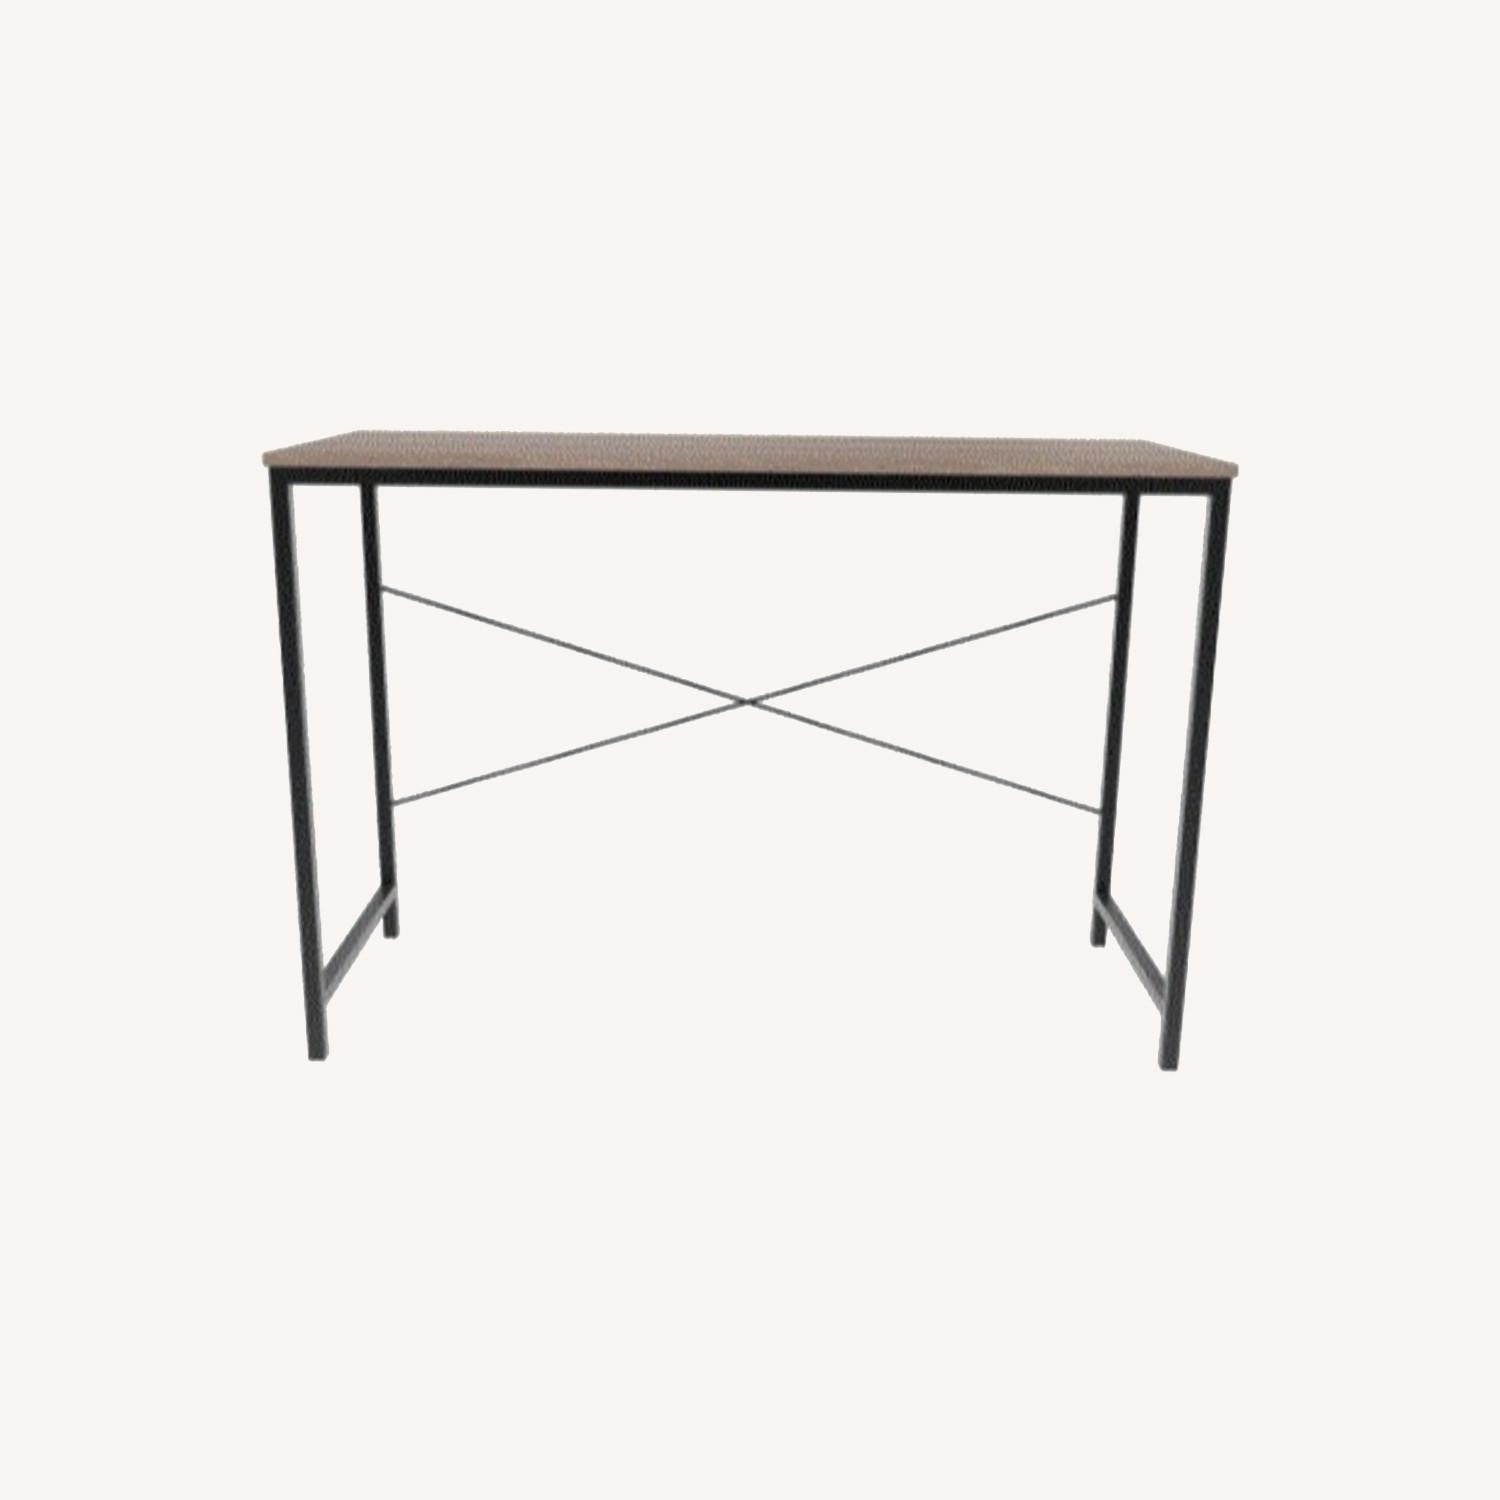 Rubbermaid Modern Console Table - image-0